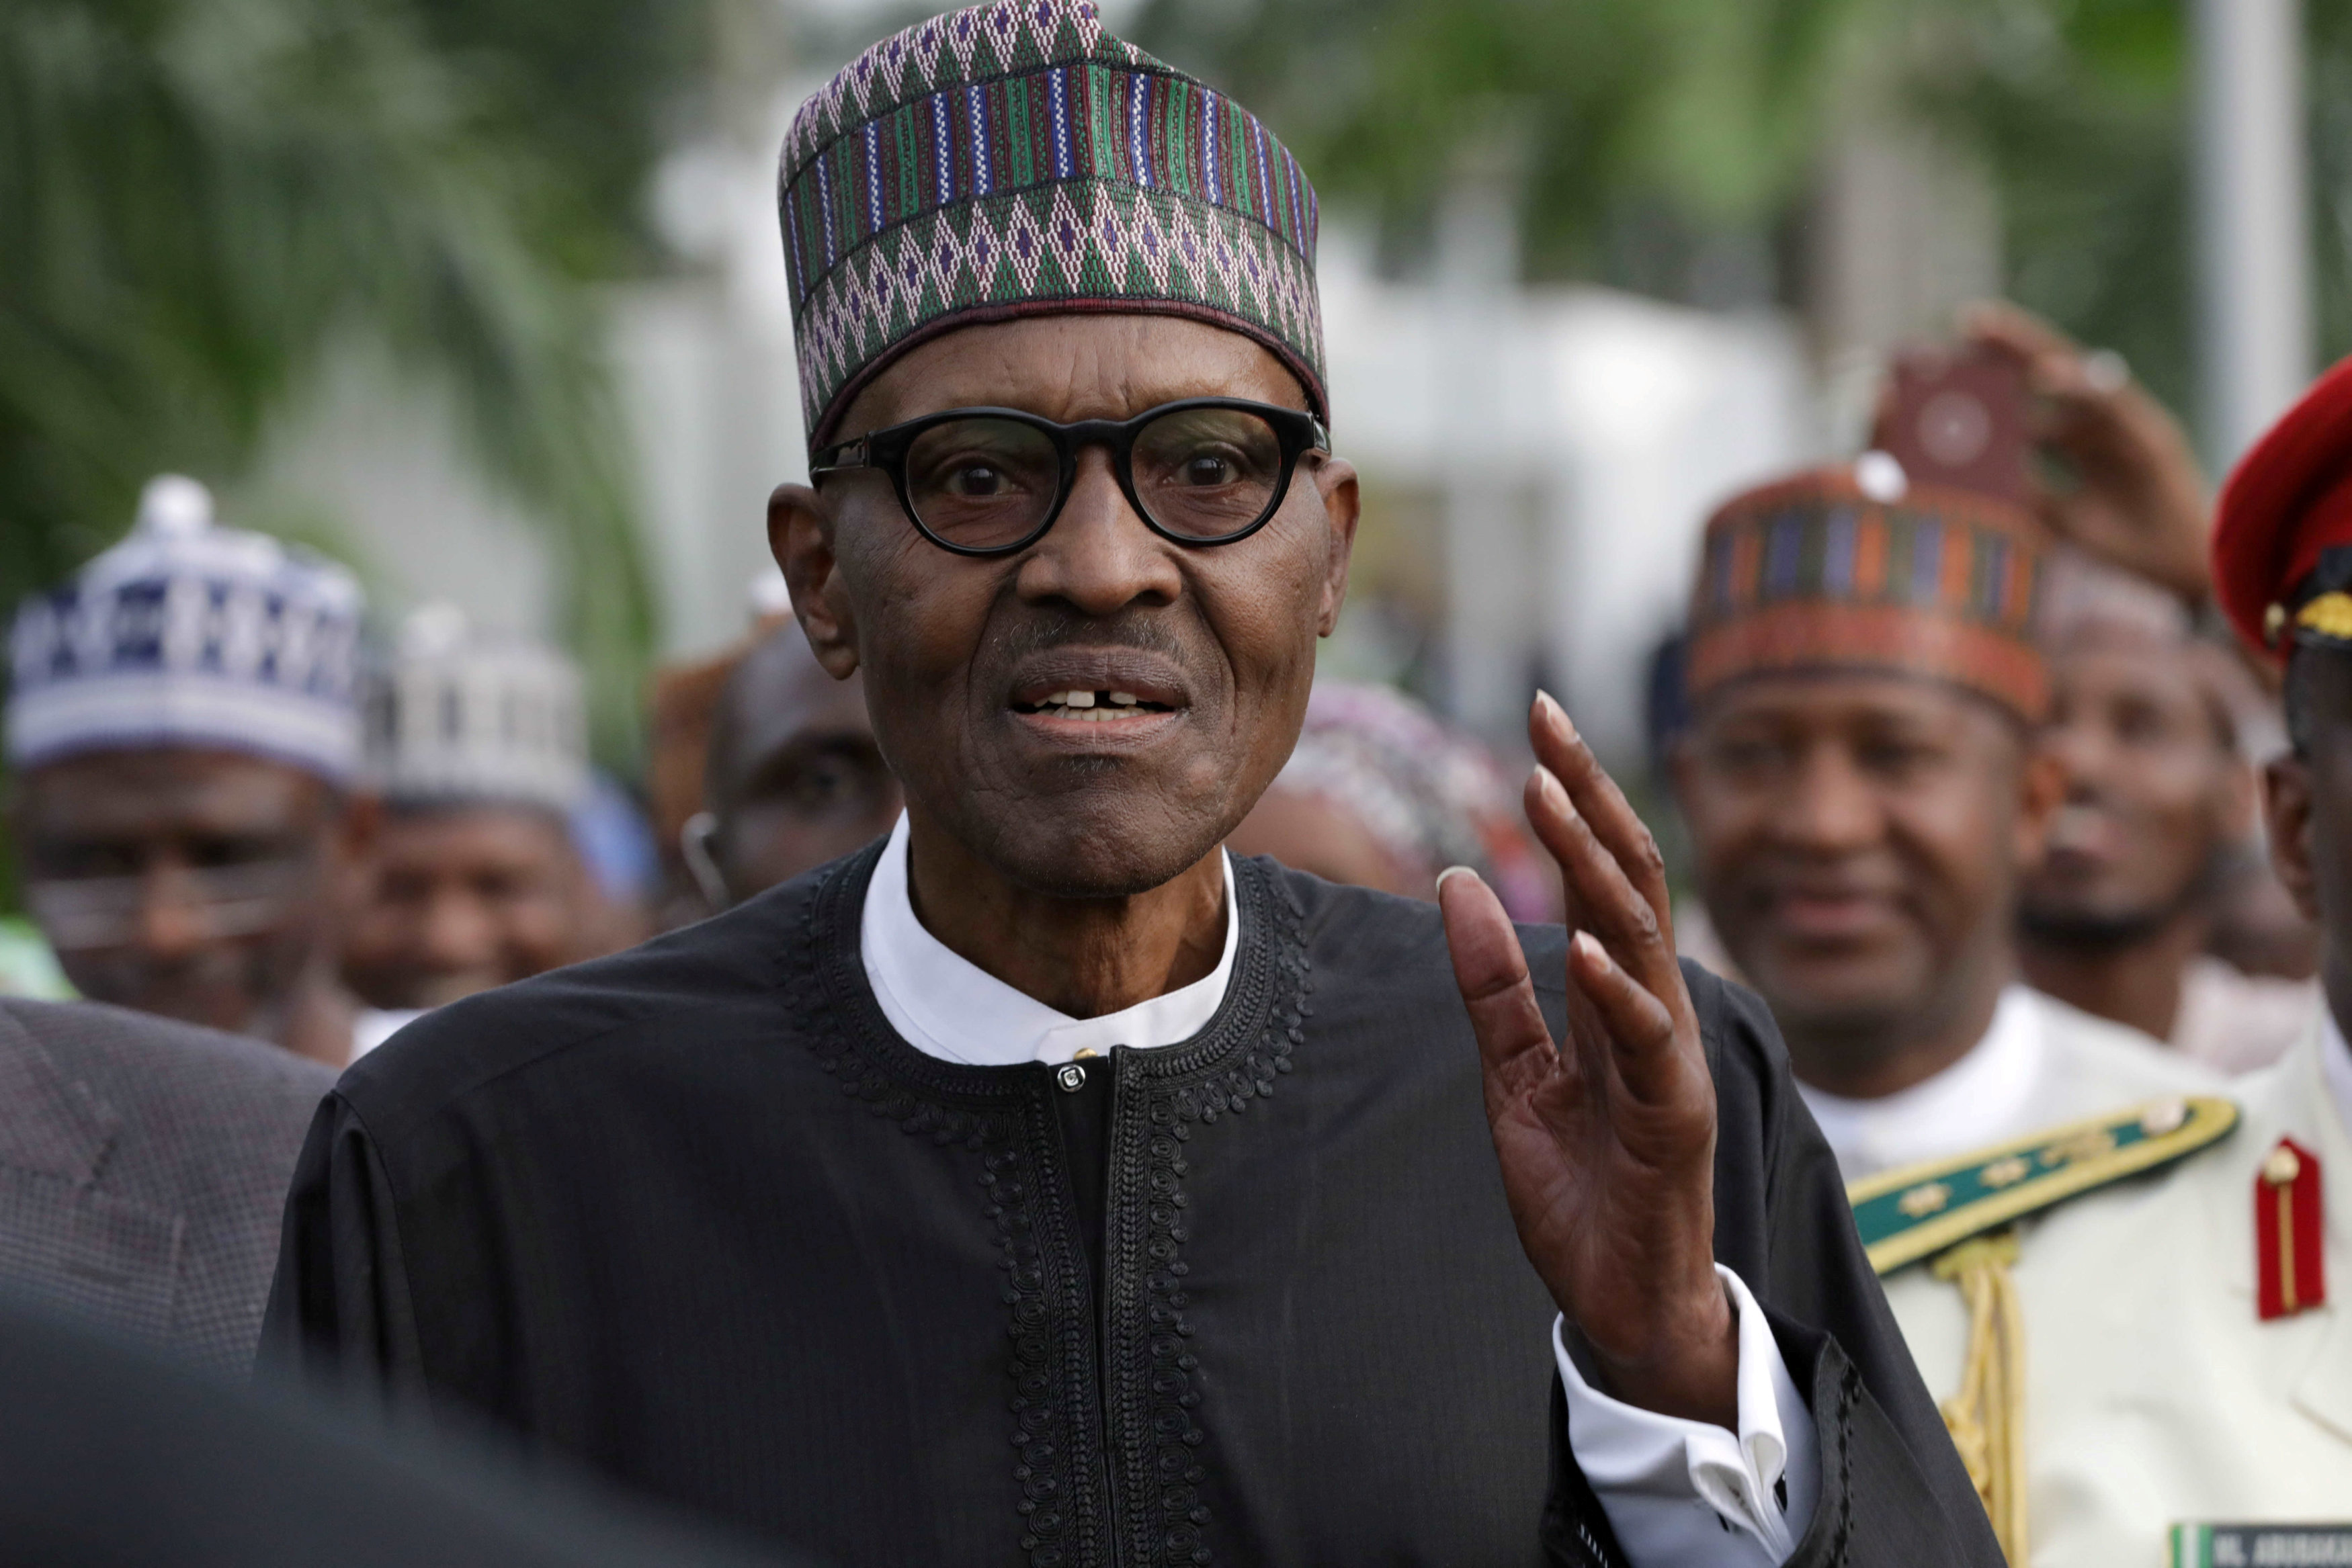 President Buhari Said He Would Not Seek Re-Election in 2019: Nigerian Minister